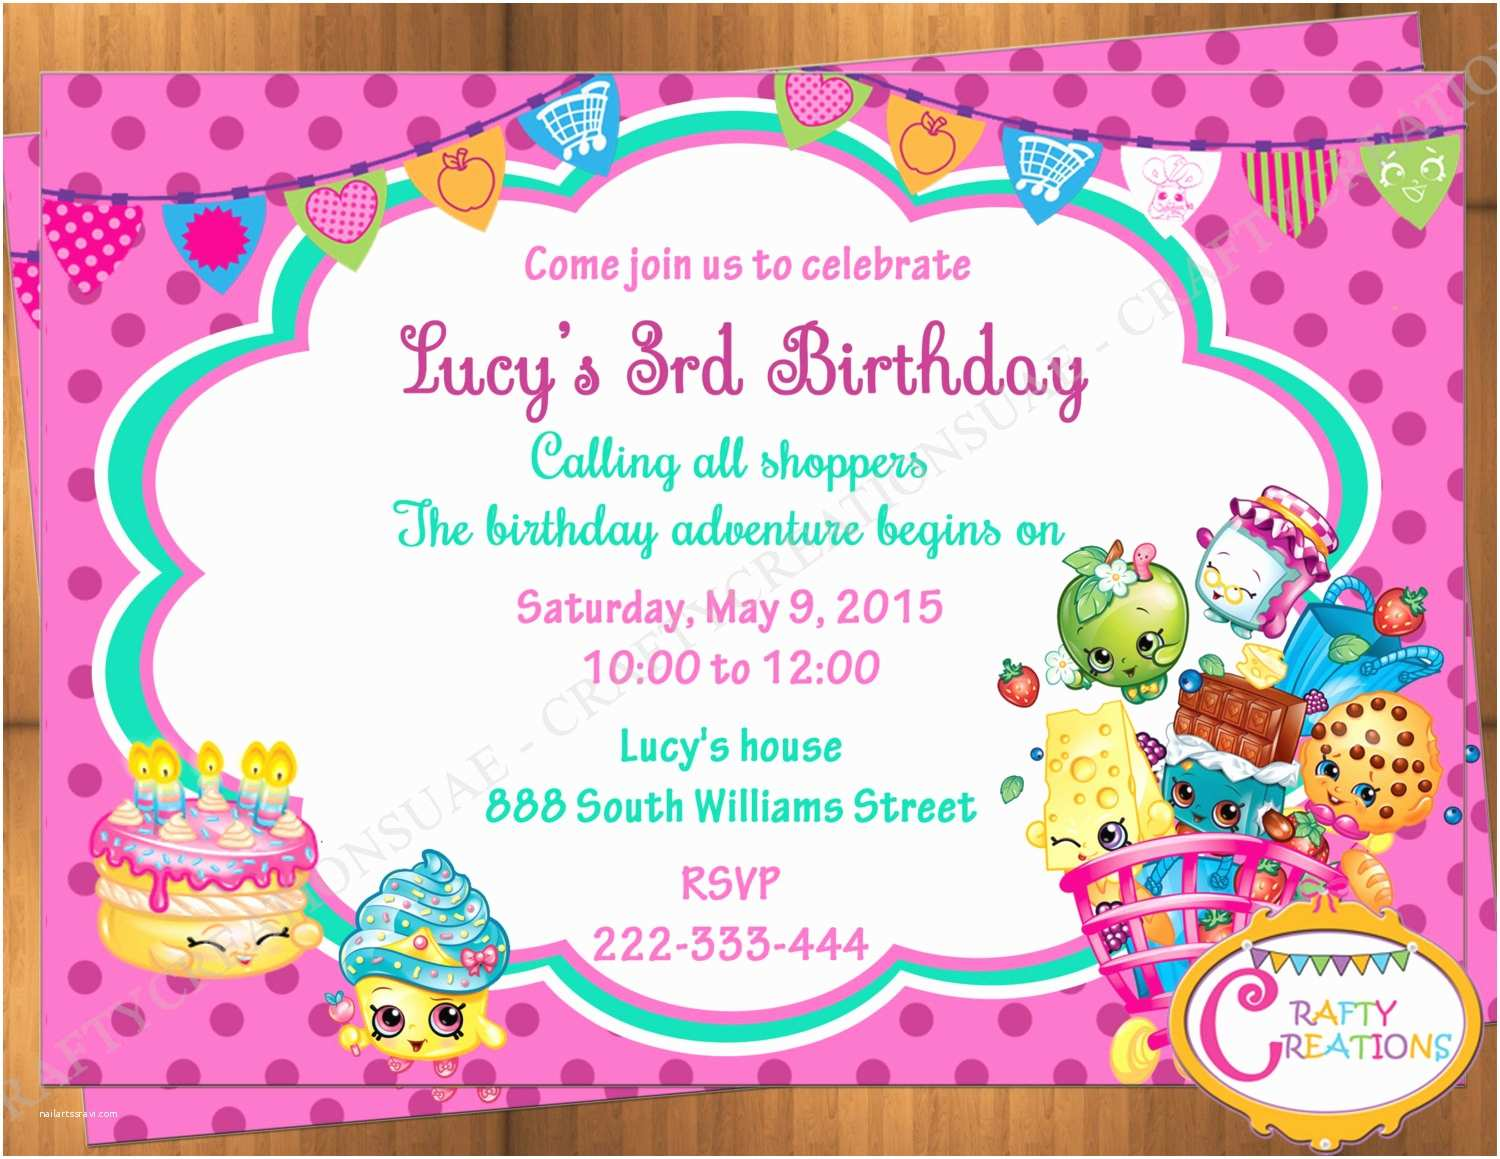 Shopkins Birthday Party Invitations Shopkins Inspired Invitation Shopkins Invitation Shopkins